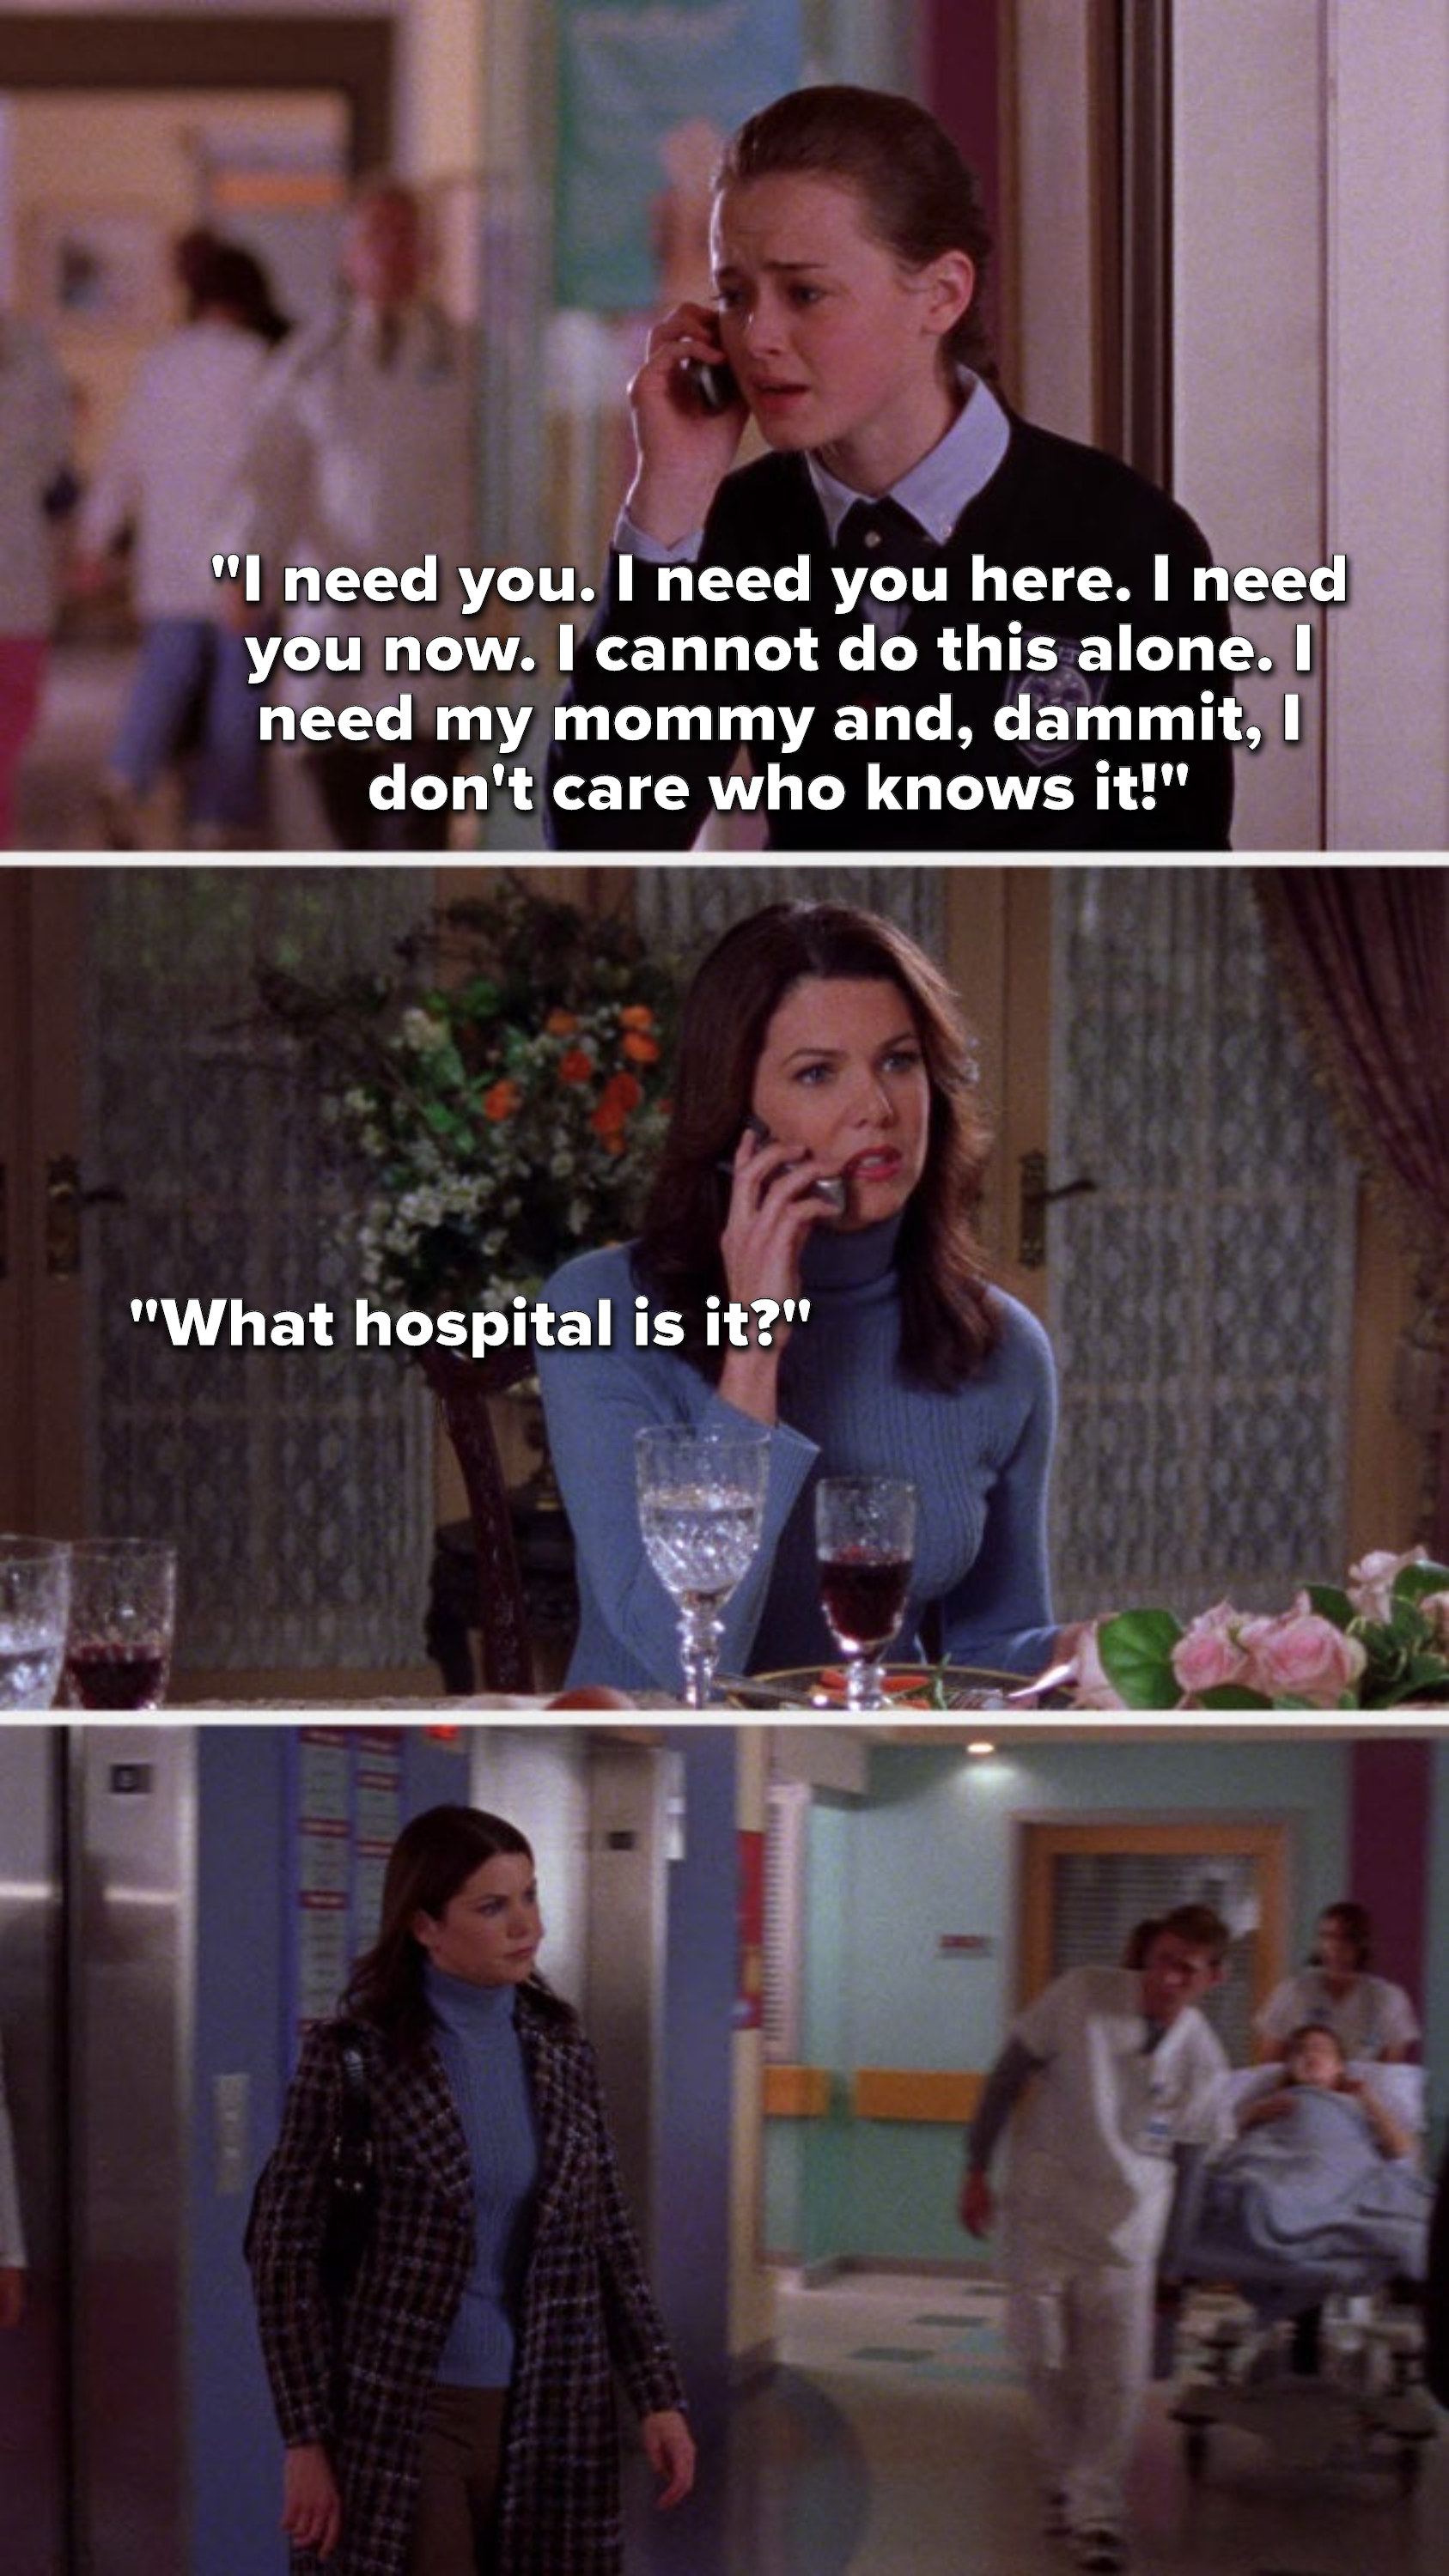 """Rory, on the phone, says, """"I need you. I need you here. I need you now. I cannot do this alone. I need my mommy and, dammit, I don't care who knows it,"""" Lorelai says, """"What hospital is it,"""" and then Lorelai goes to the hospital"""